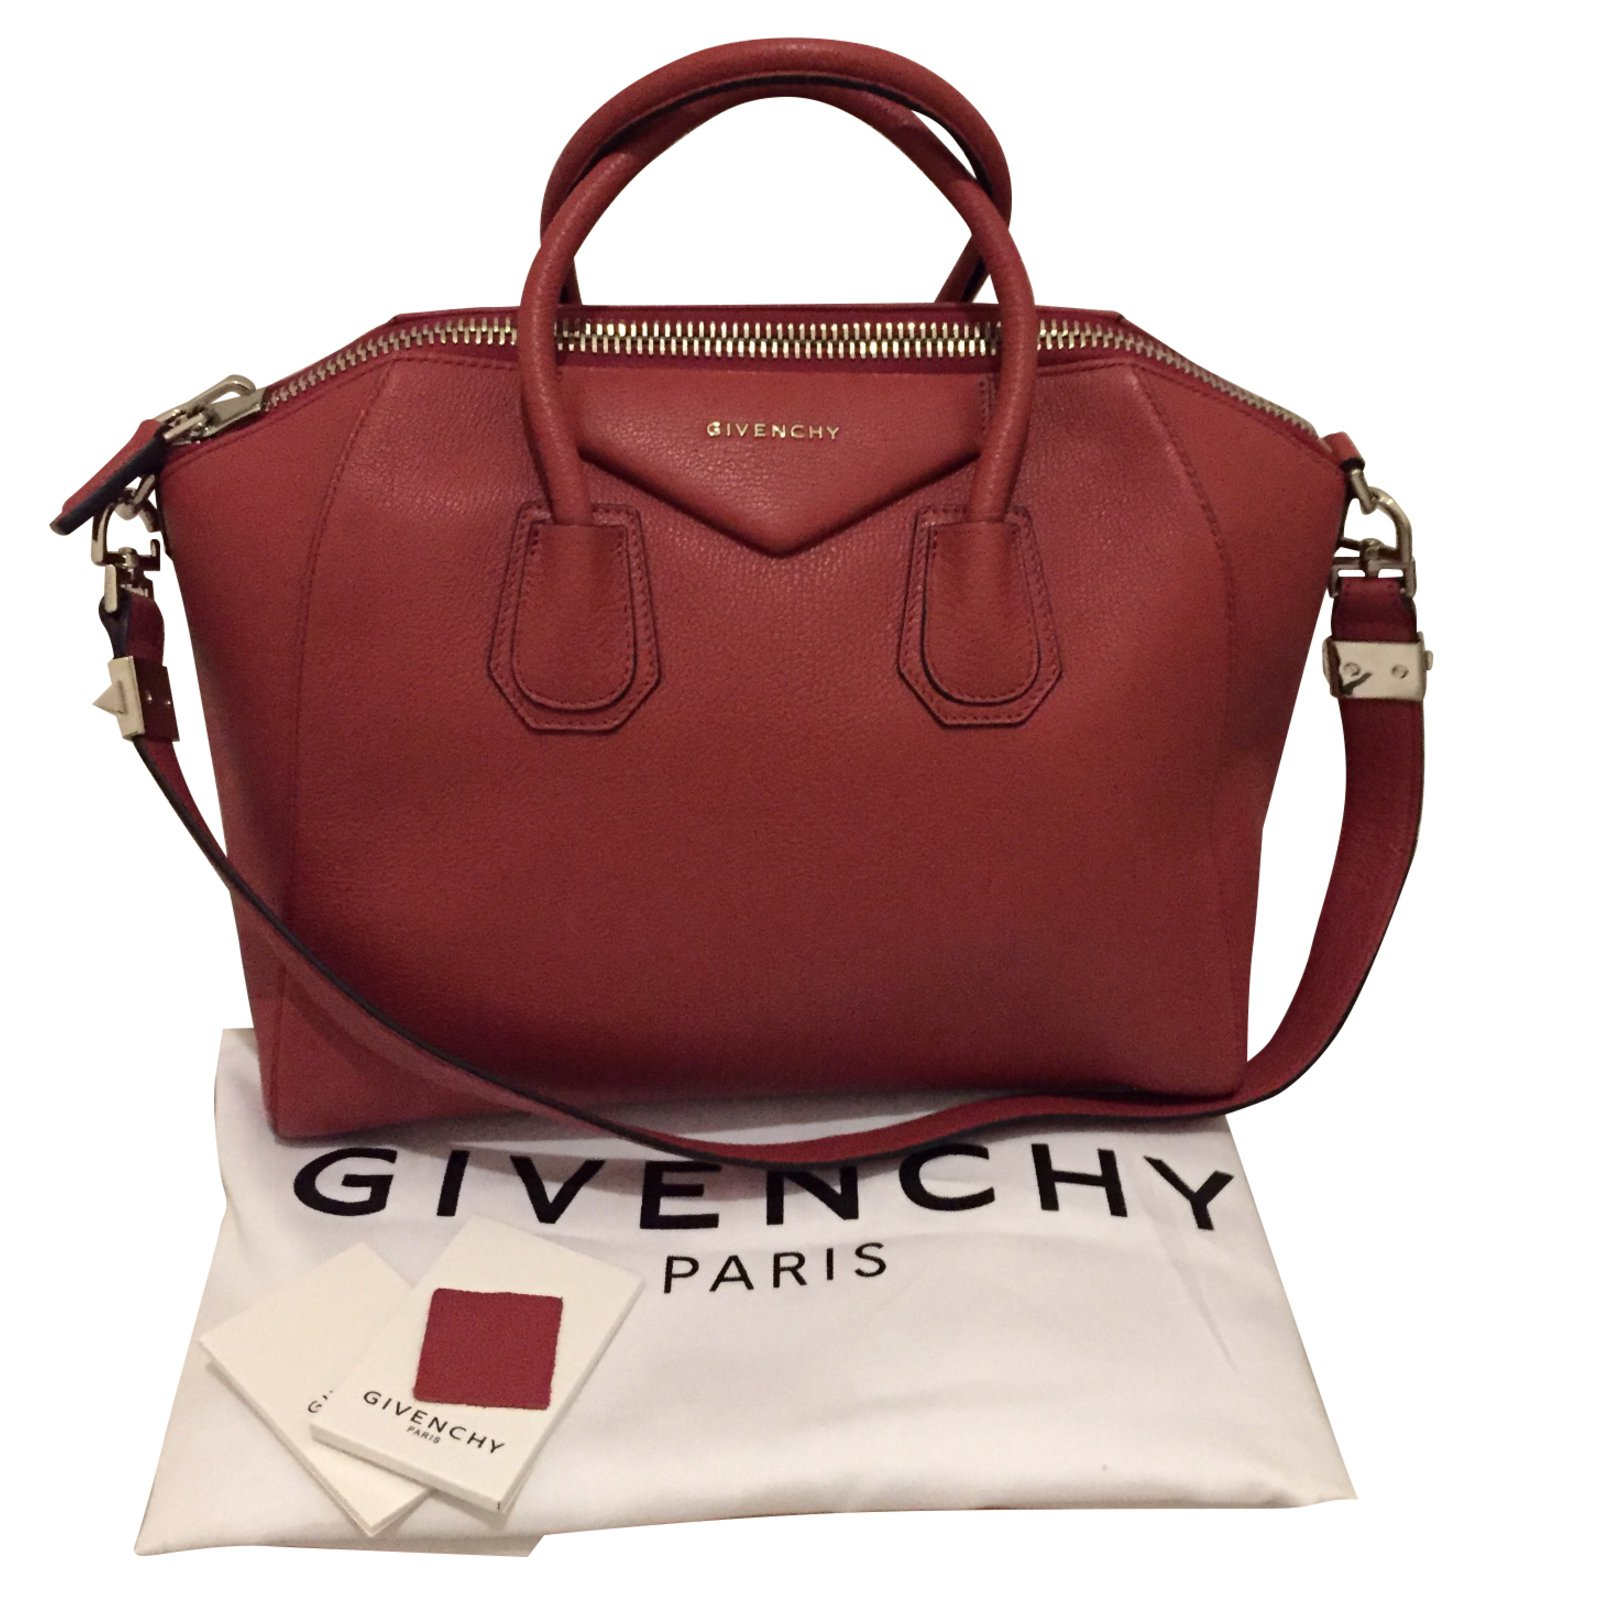 55c0317943 ... hot sale online 1f107 1842a Givenchy Antigona Handbags Leather Red ref.54630  ...